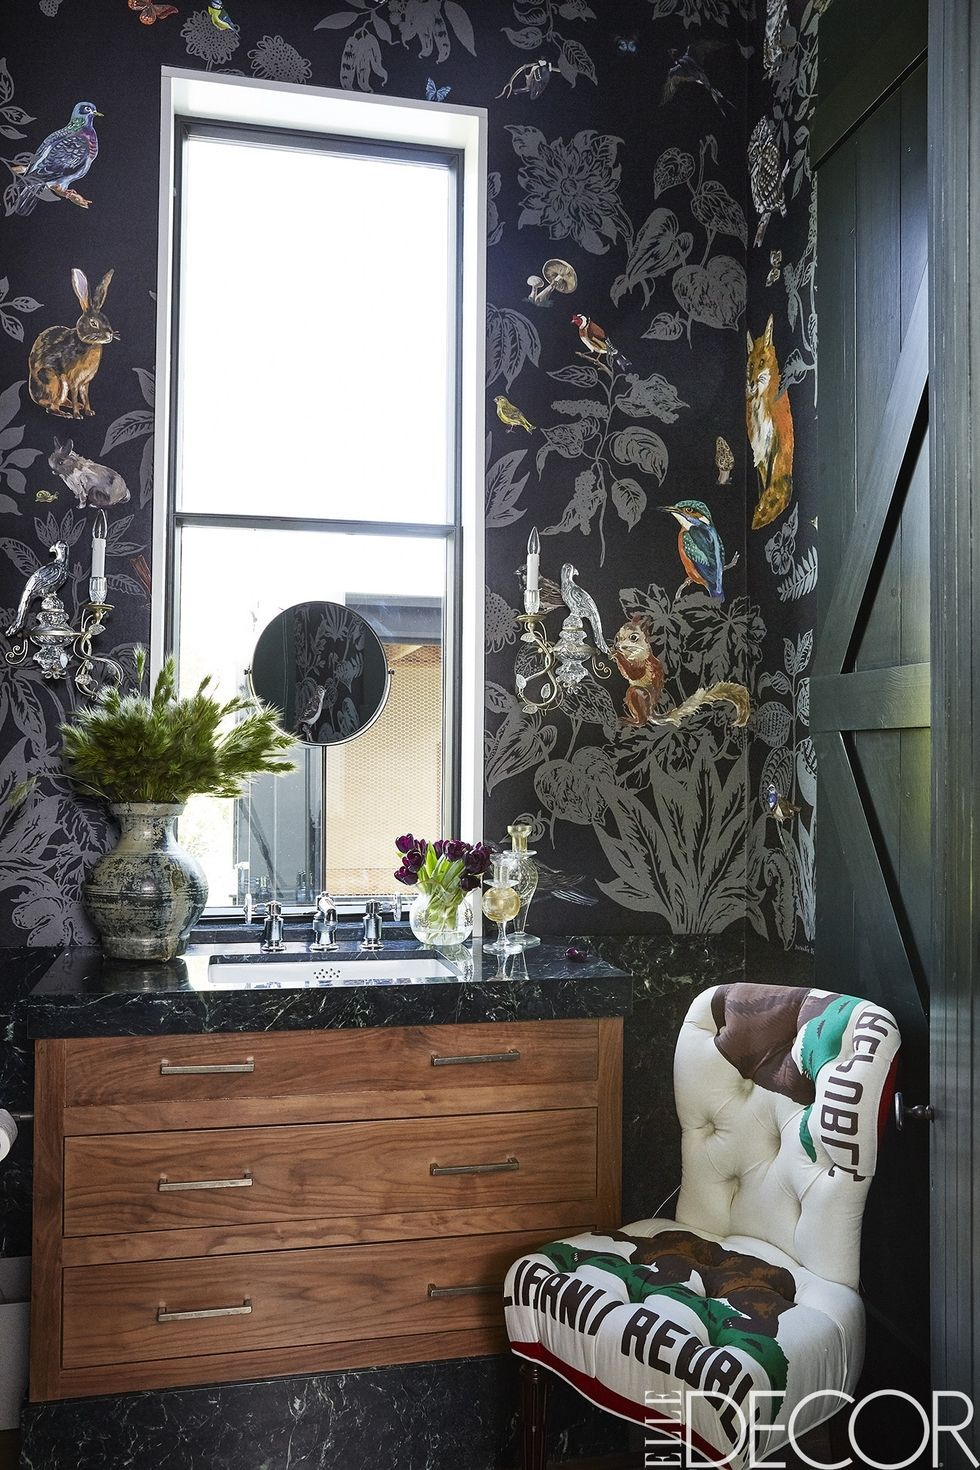 Source :  https://www.elledecor.com/design-decorate/room-ideas/g3208/wallpaper-design-ideas/?slide=4       WALLPAPER 2.0   This is a new era for wallpaper. This year trend involves wallpaper with a whole new level of coolness, printed digitally and has endless design options. The colors are more saturated and most of the times come with unique patterns that you just can't find in the traditionally produced papers. Well-picked wallpaper gives some accent to the less attractive space like the entryway.